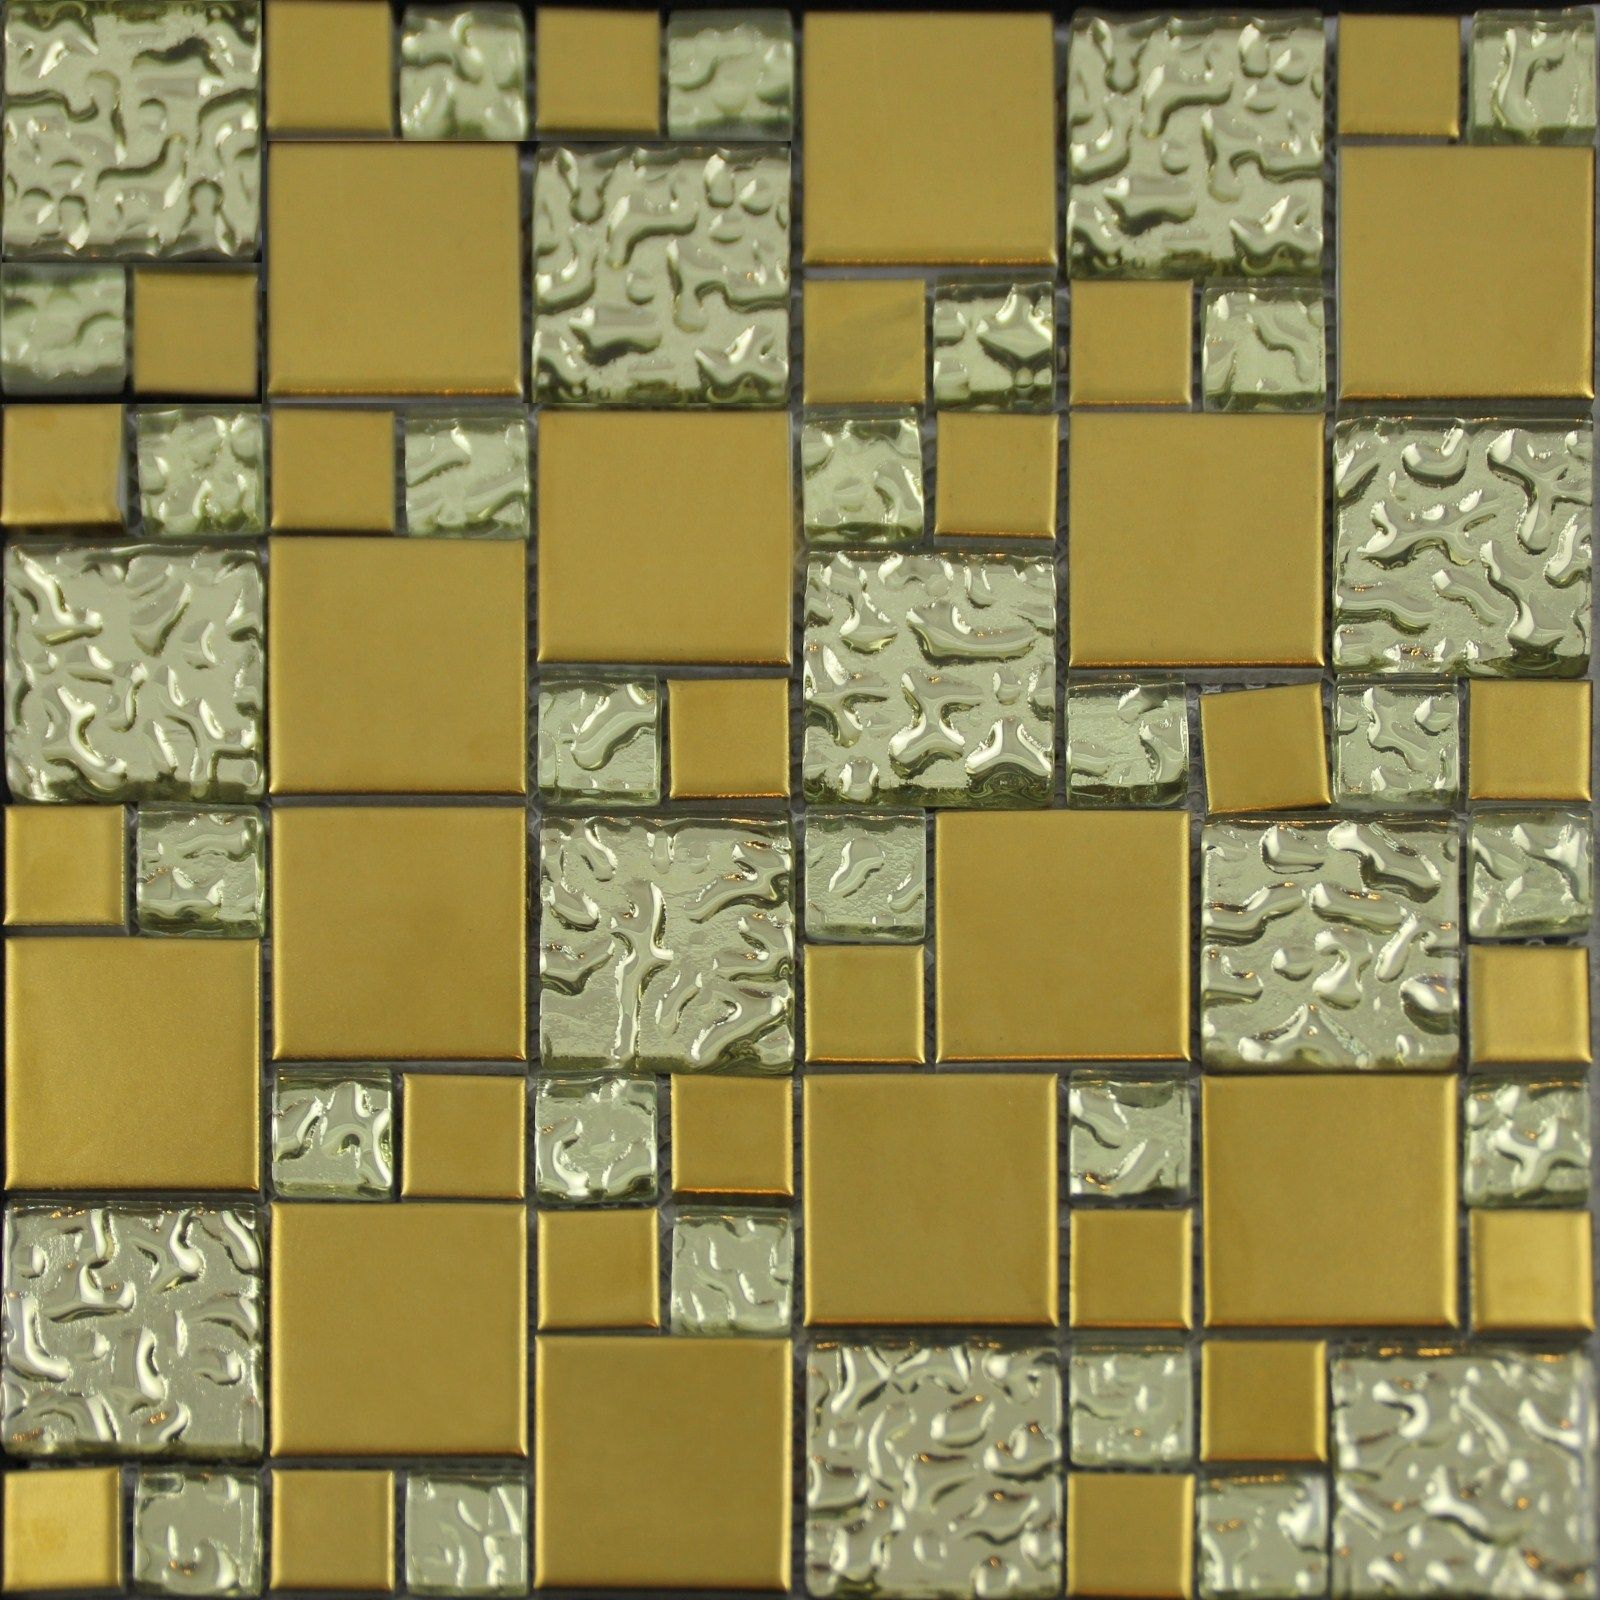 Gold Porcelain And Glass Mosaic Square Tile Designs Plated Ceramic Tiles Wall Kitchen Backsplash Gpa015 Tile Design Pattern Mosaic Glass Tile Design